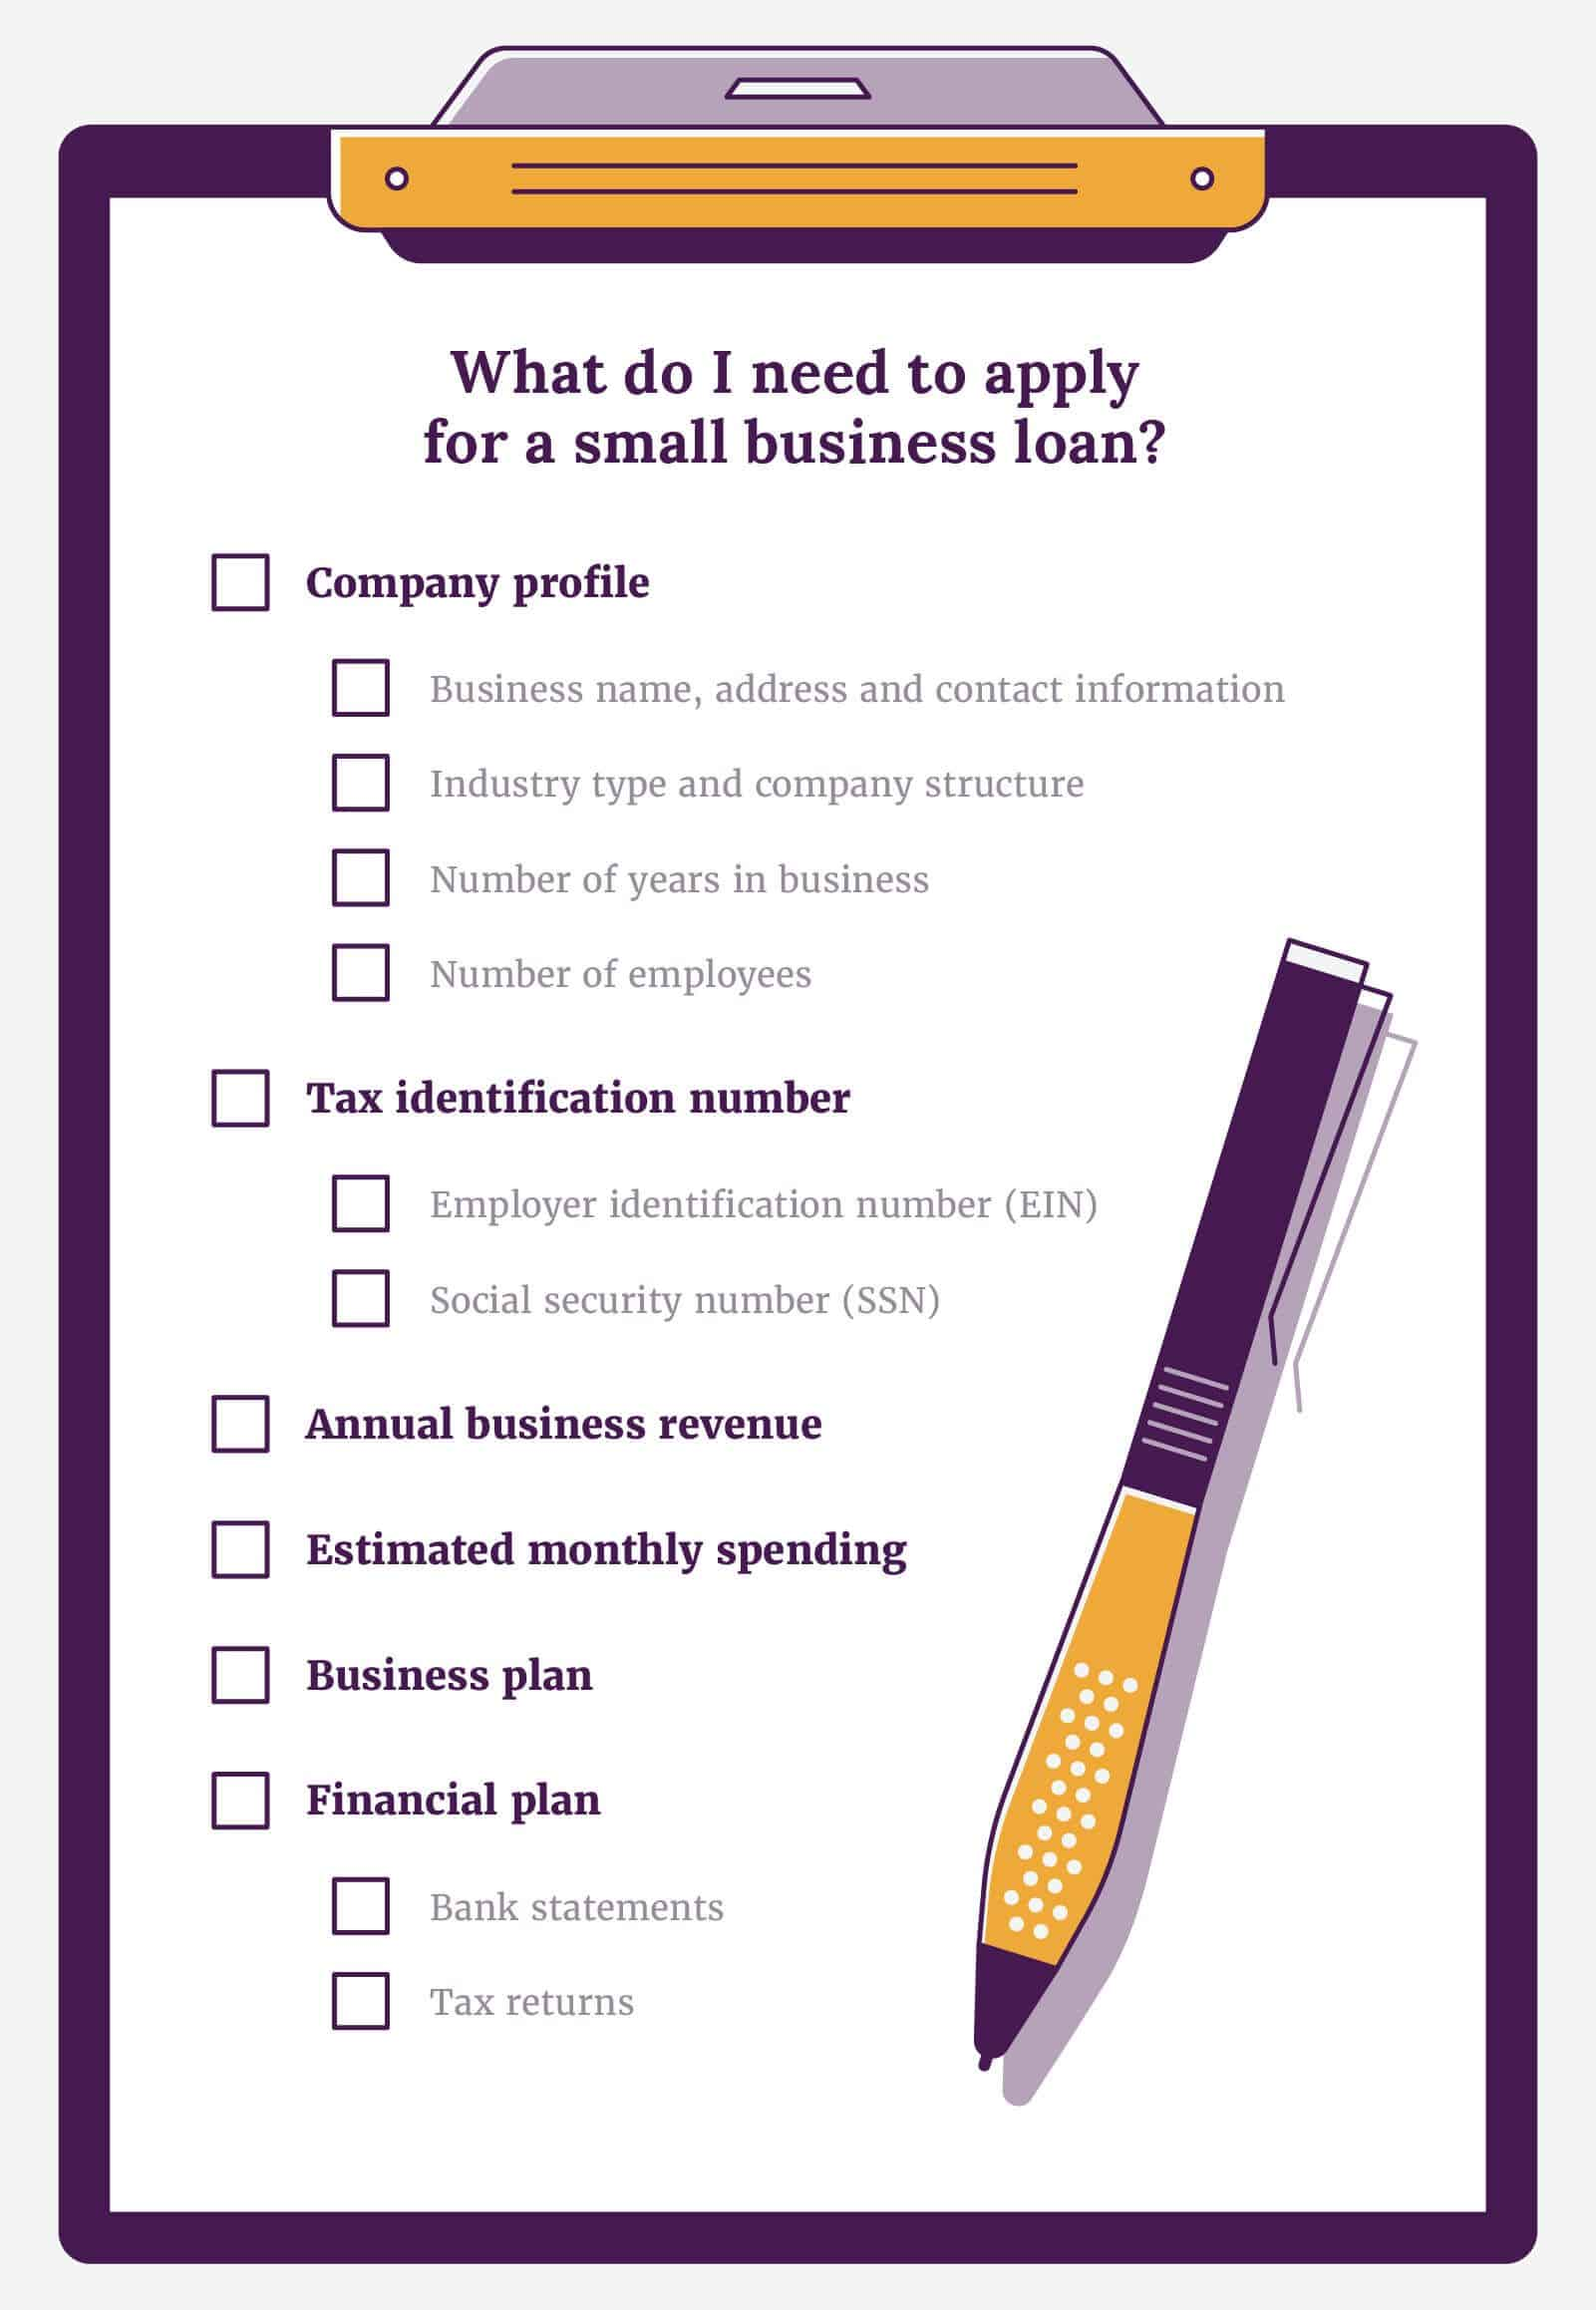 Checklist of what is needed to apply for a small business loan